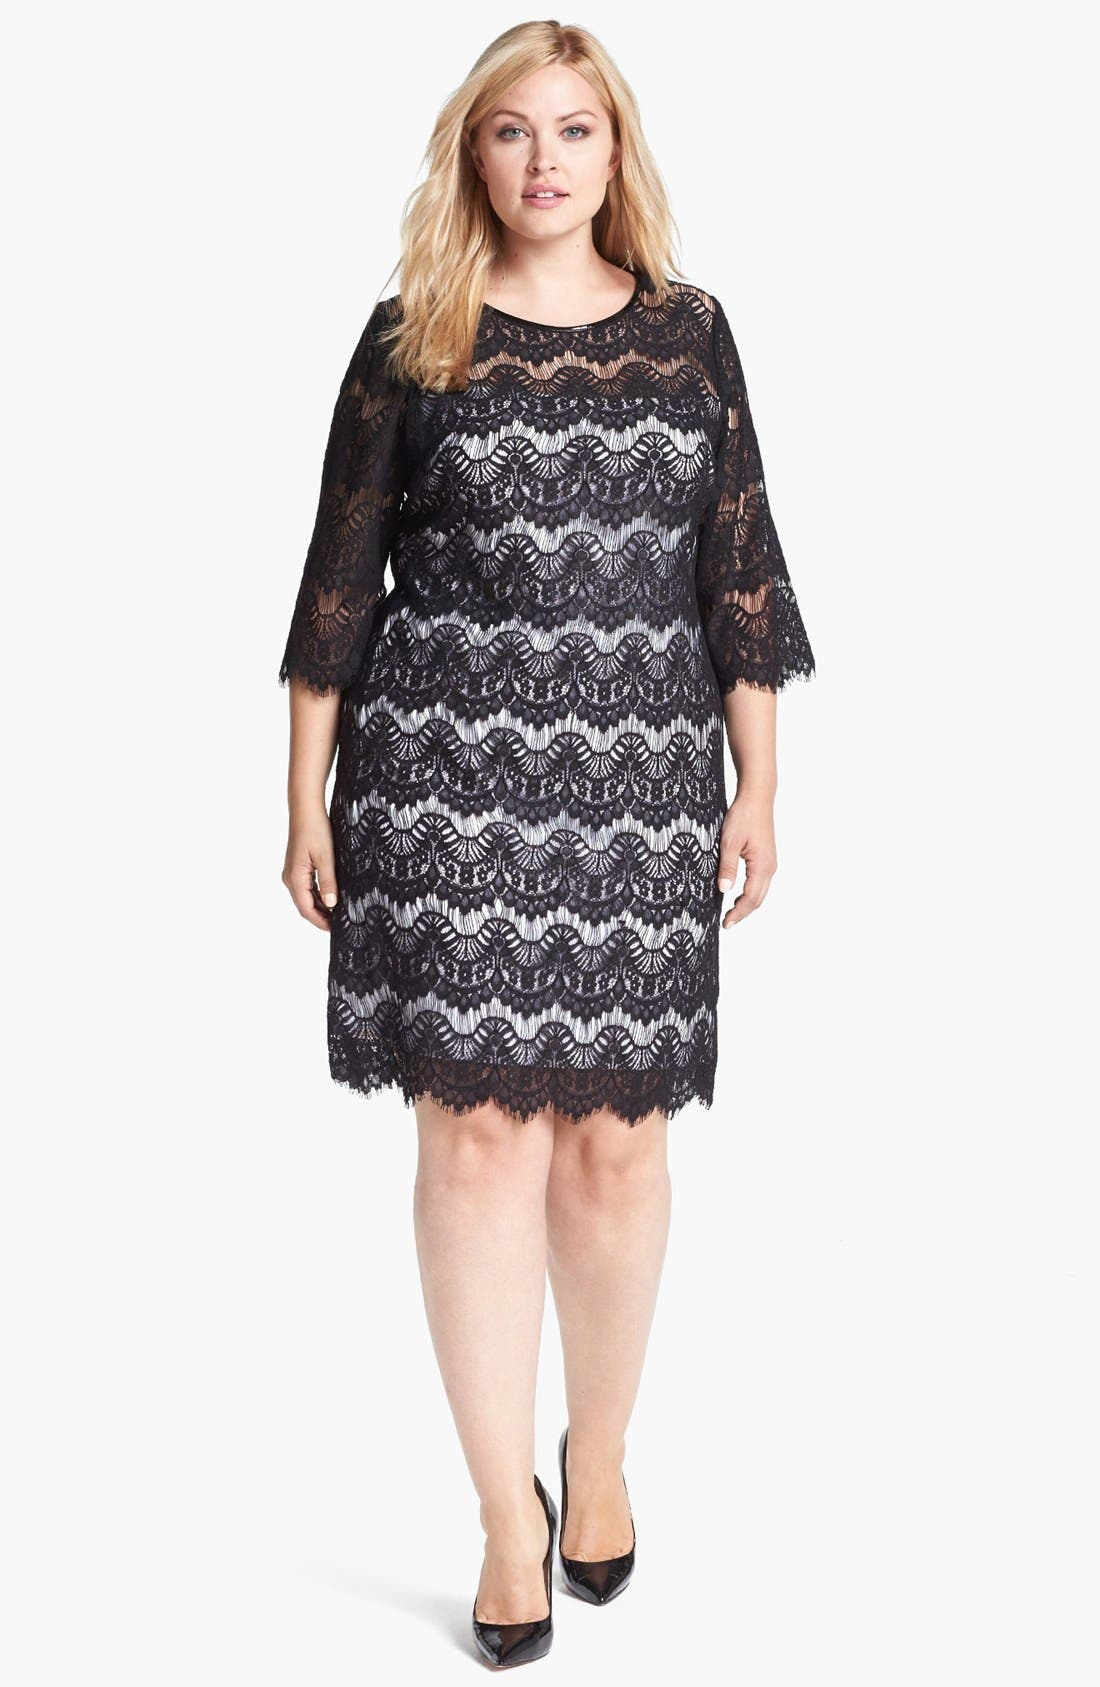 Alternate Image 1 Selected - Calvin Klein Faux Leather Trim Lace Dress (Plus Size)